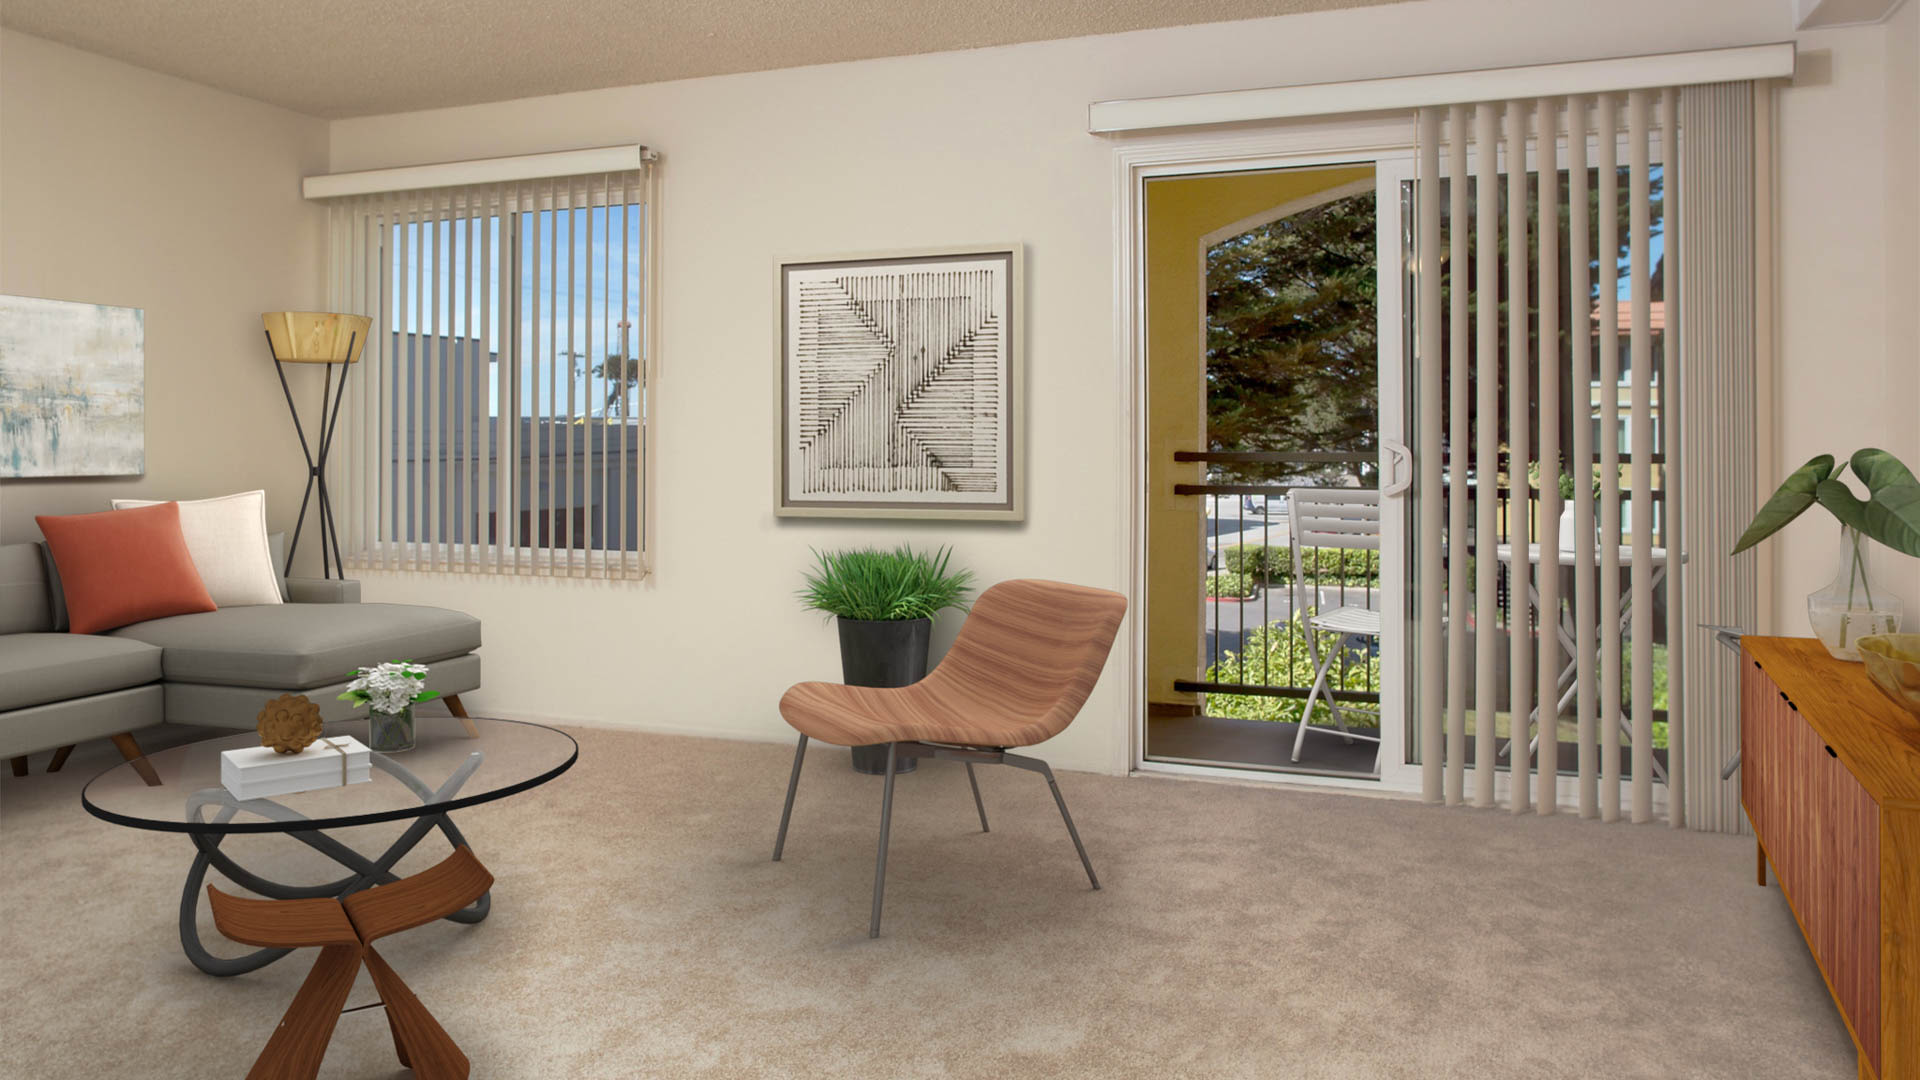 Northpark Apartments - Living Area with Balcony